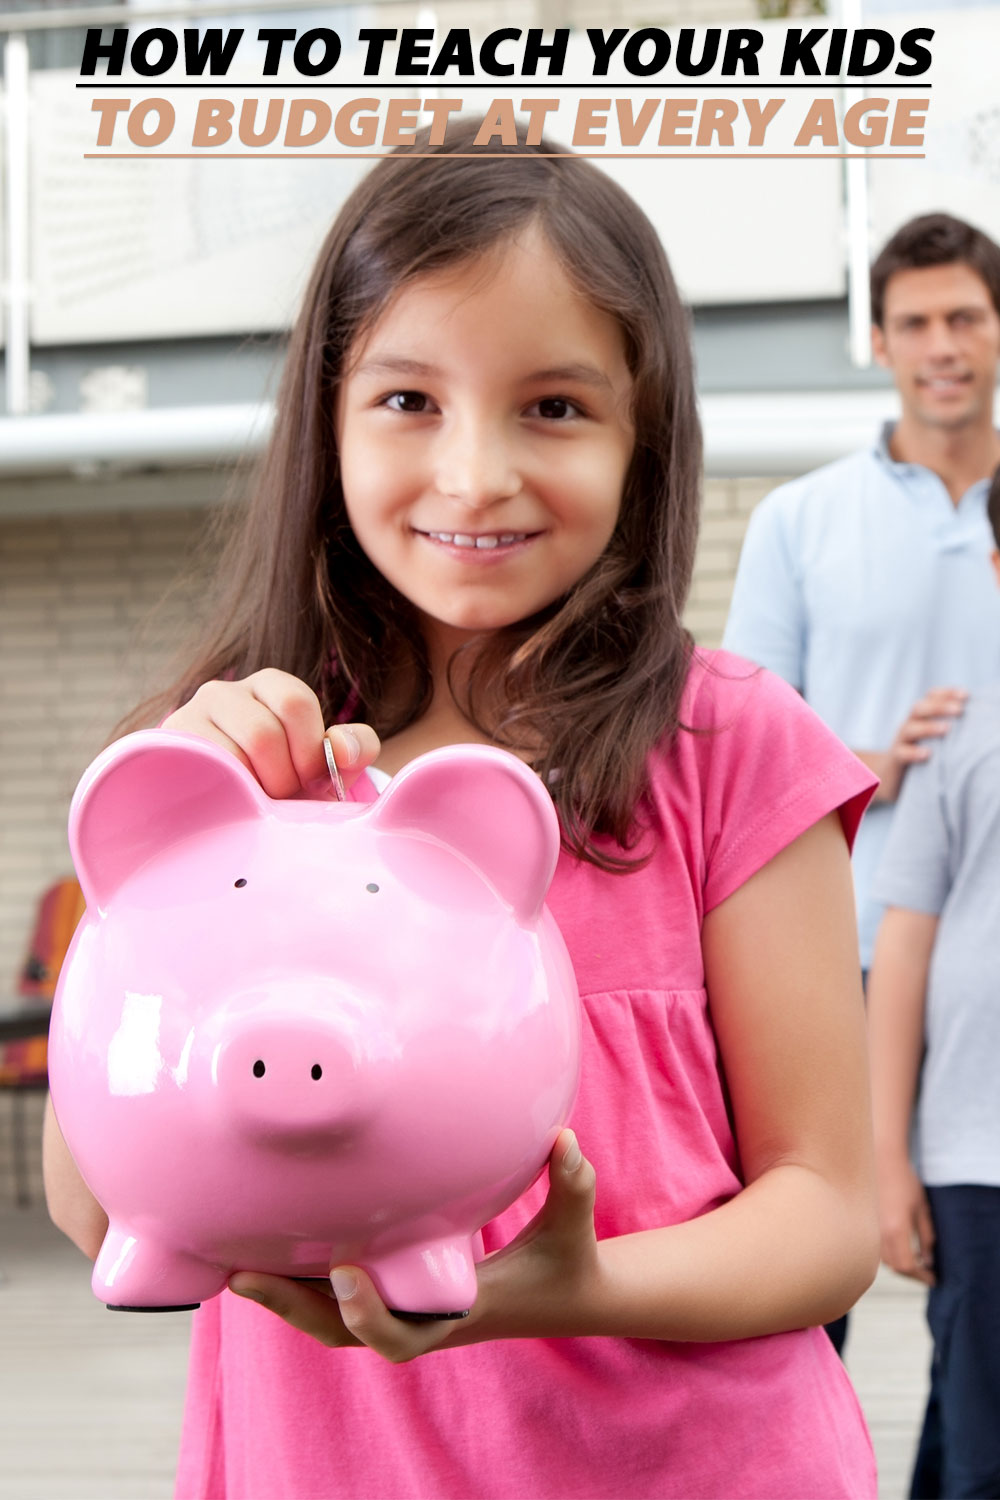 Budgeting is essential to being a good financial steward. We're raising kids who will be on their own soon. Here\'s how we can teach budgeting at every age.